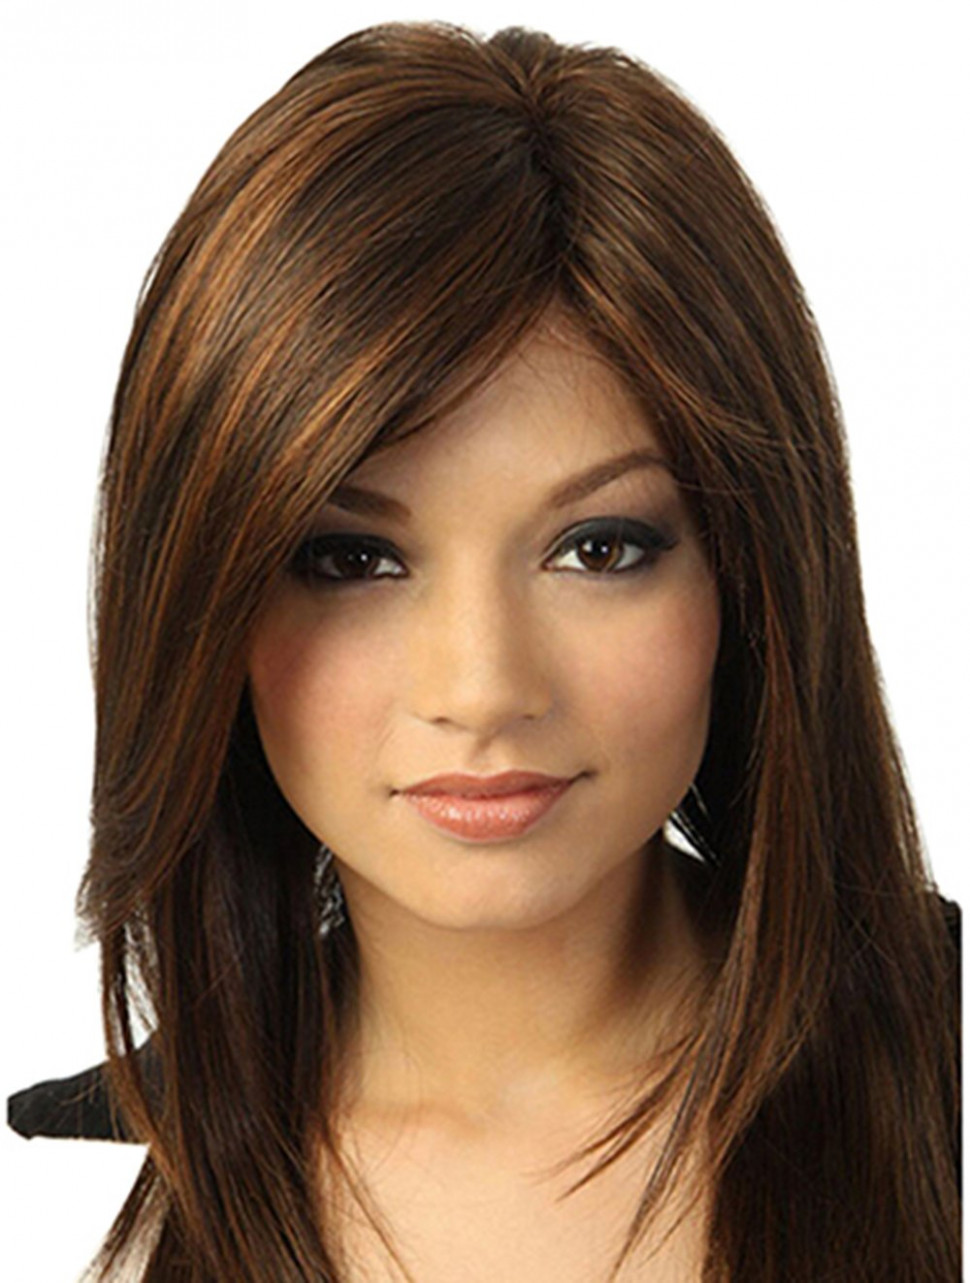 Amazon.com: Brown Medium Length Straight Synthetic Hair Wigs for ...